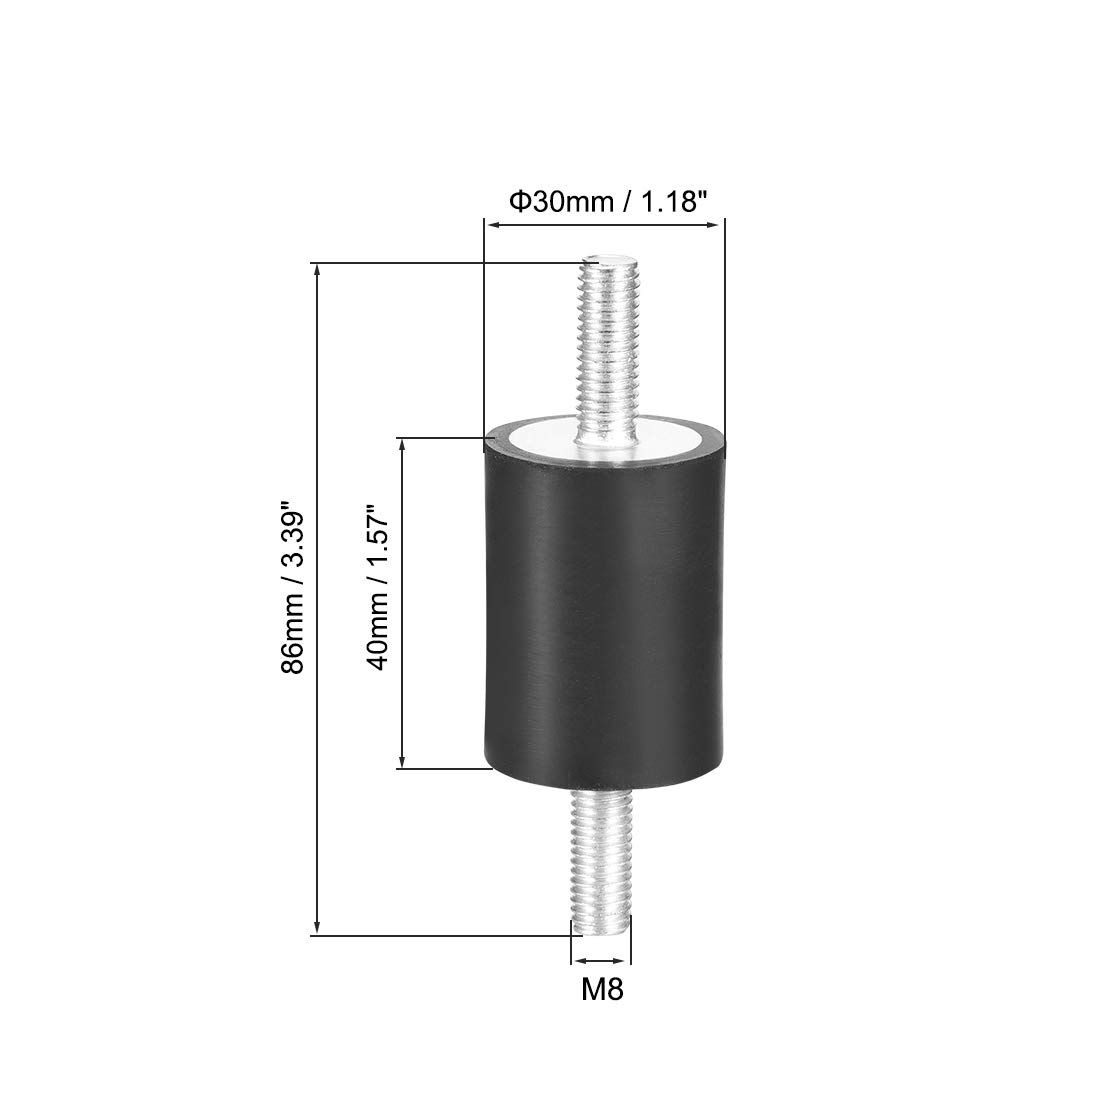 uxcell 30 x 30mm Rubber Mounts,Vibration Isolators,Shock Absorber with M8 x 23mm Studs 4pcs